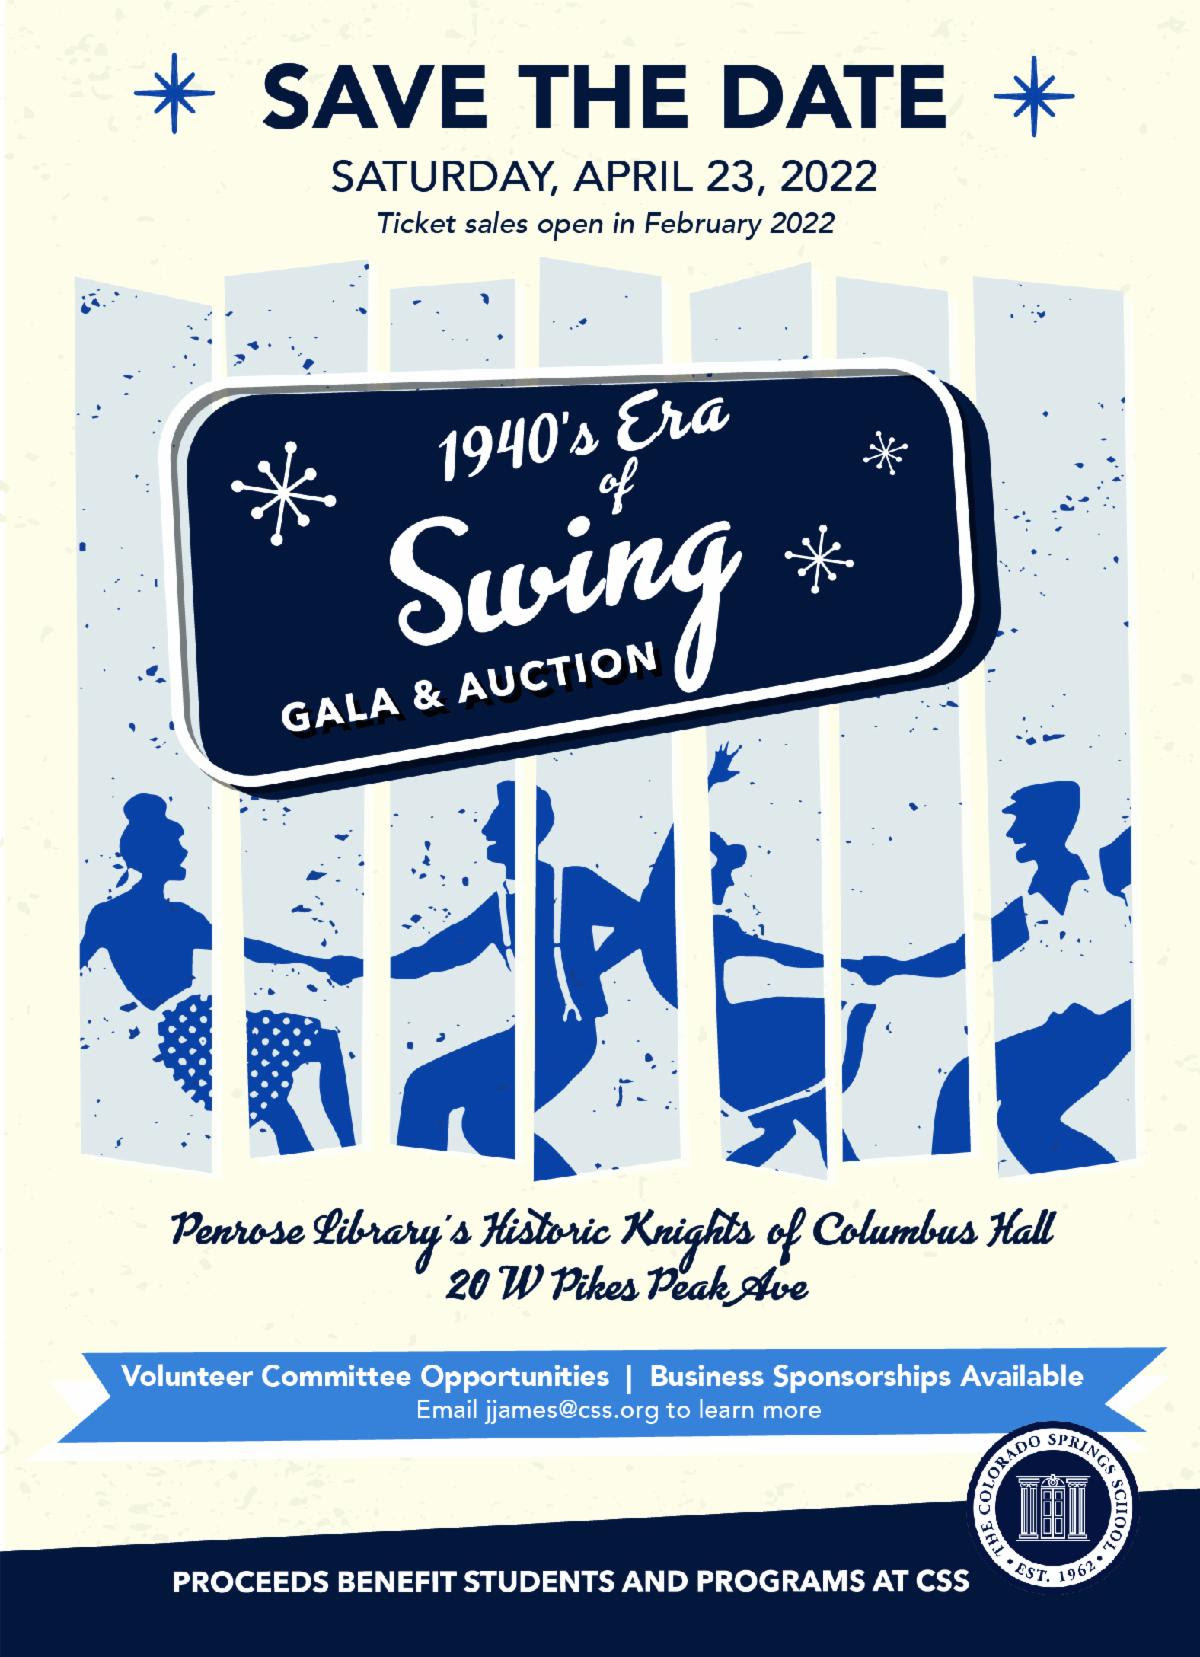 Save the Date: 1940s Era of Swing Gala & Auction – April 23, 2022